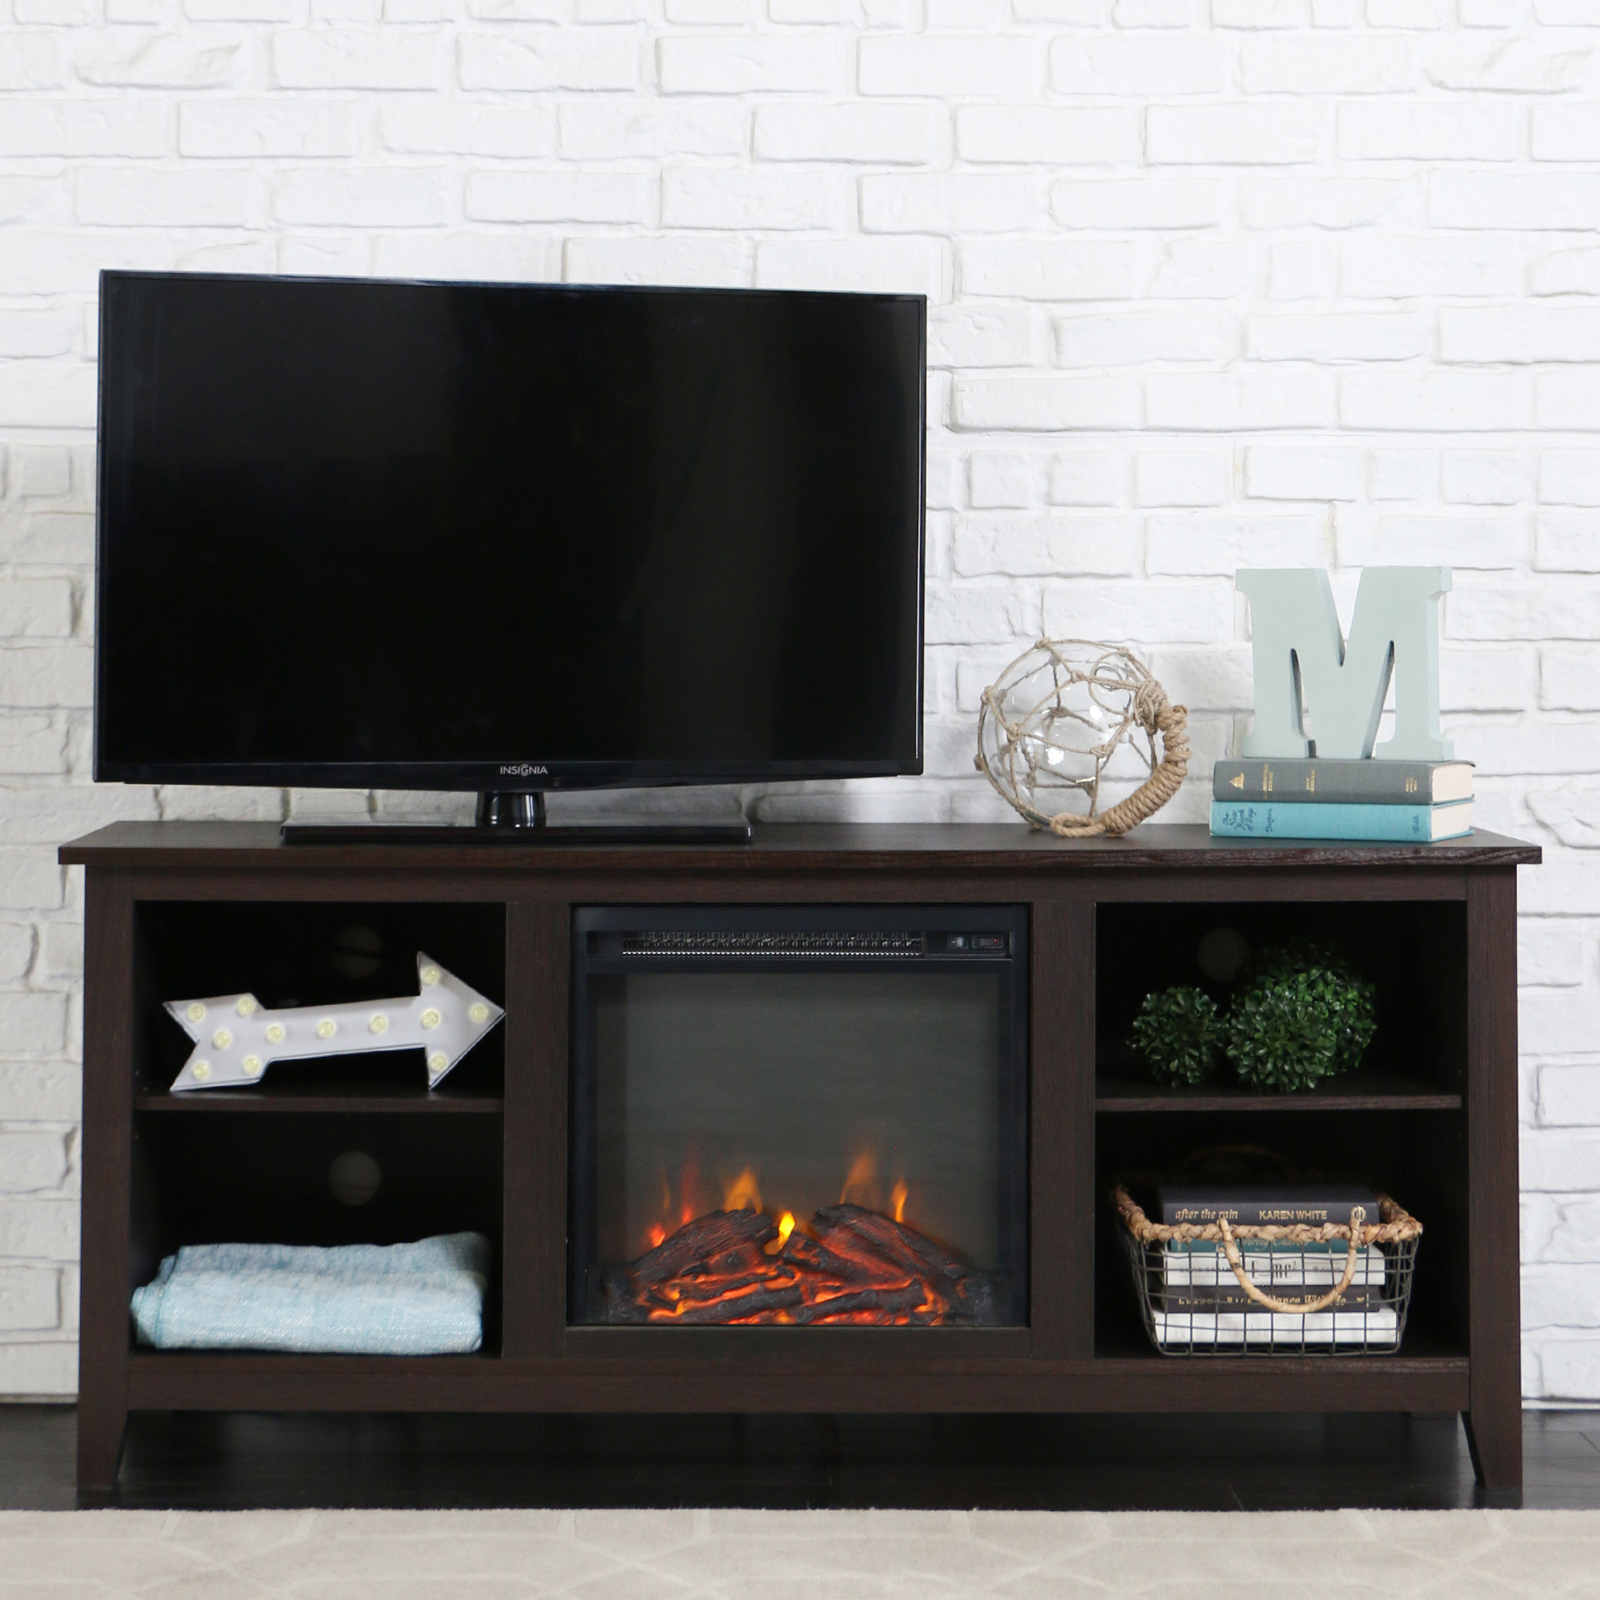 fireplace stand tv cheap wayfair furniture reviews media homestar pdx electric kerry